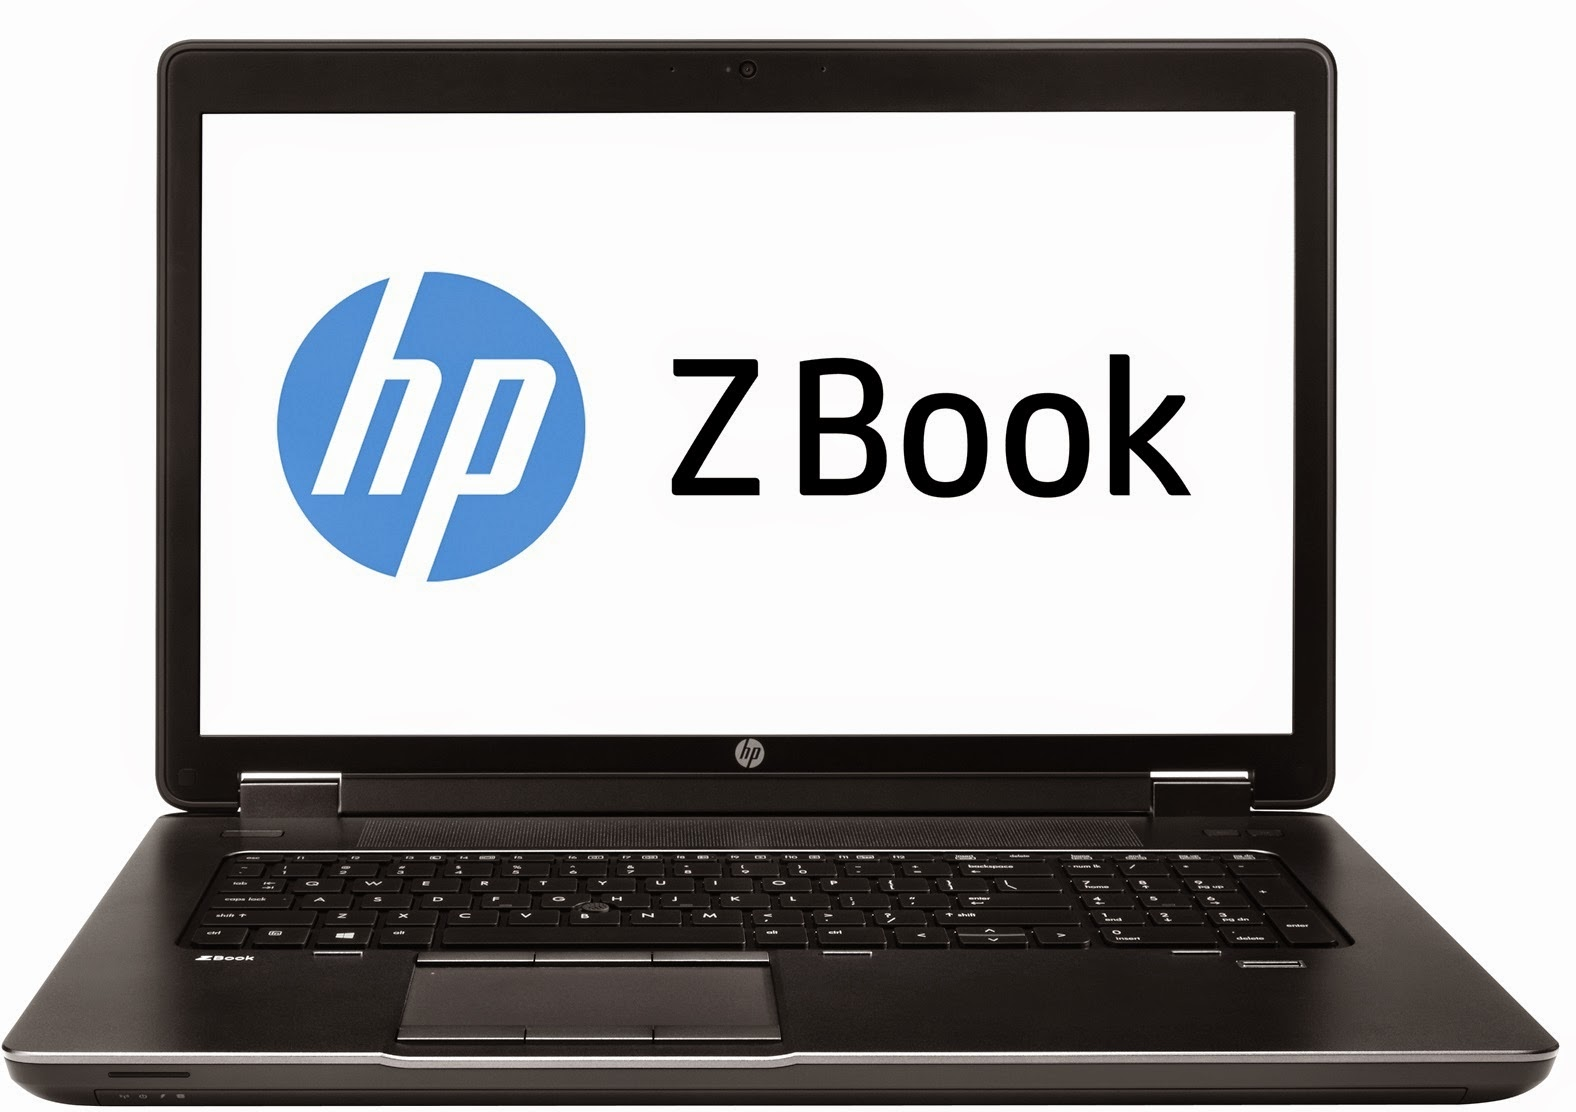 HP ZBook 17 Workstation Drivers For Windows 7 (64bit)